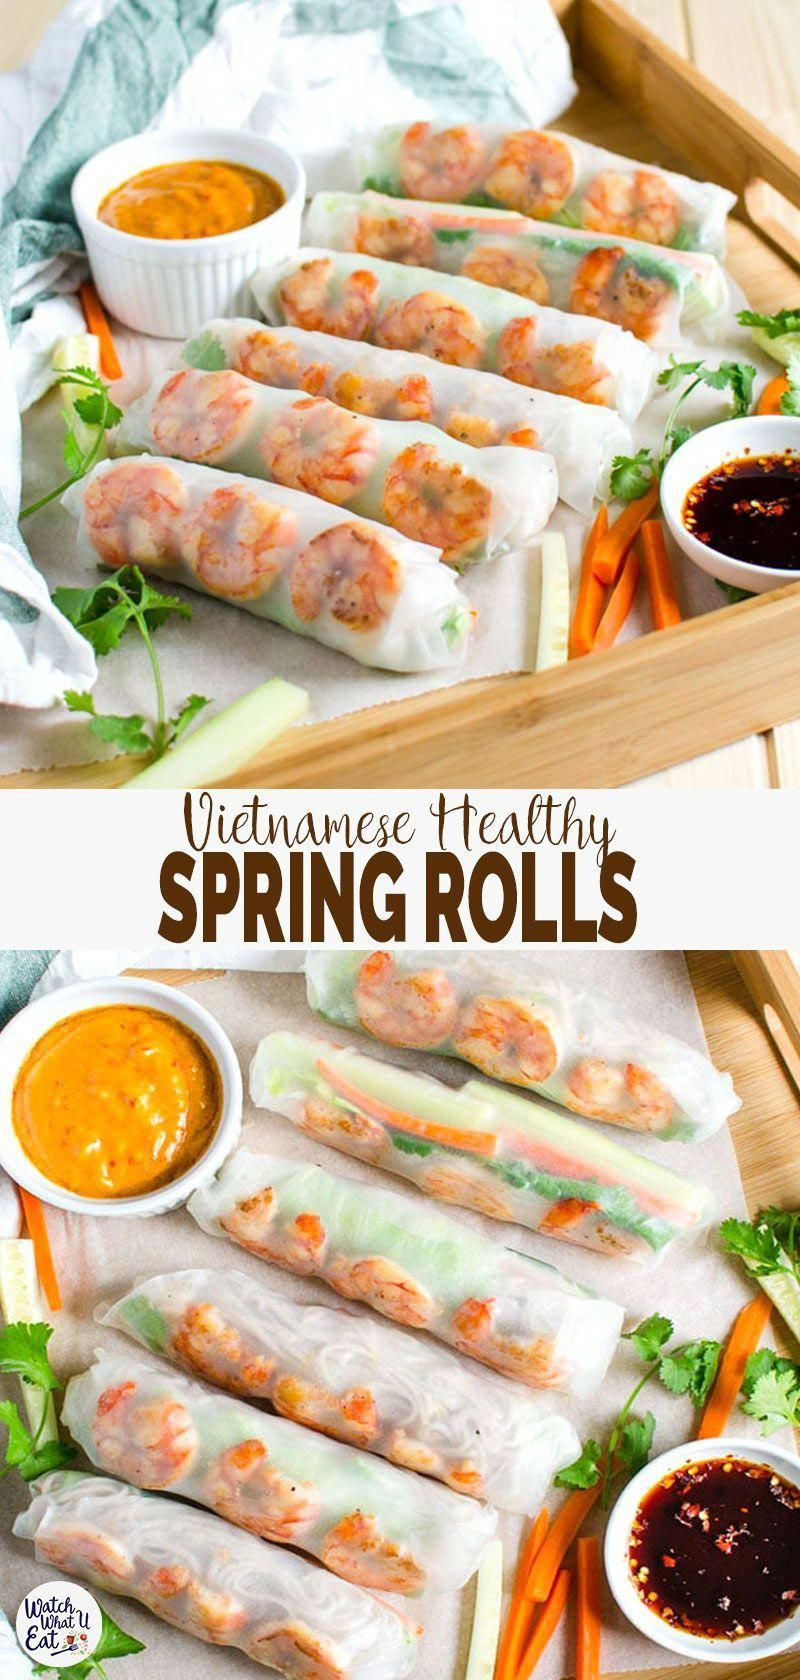 Vietnamese healthy spring rolls with creamy peanut butter sauce are a perfect treat to yourself at home. 30 min flavorful, healthy rolls for lunch or dinner.| #watchwhatueat #Vietnamese #springrolls #healthyrecipes Dinner Recipes #PerfectHealthDiet